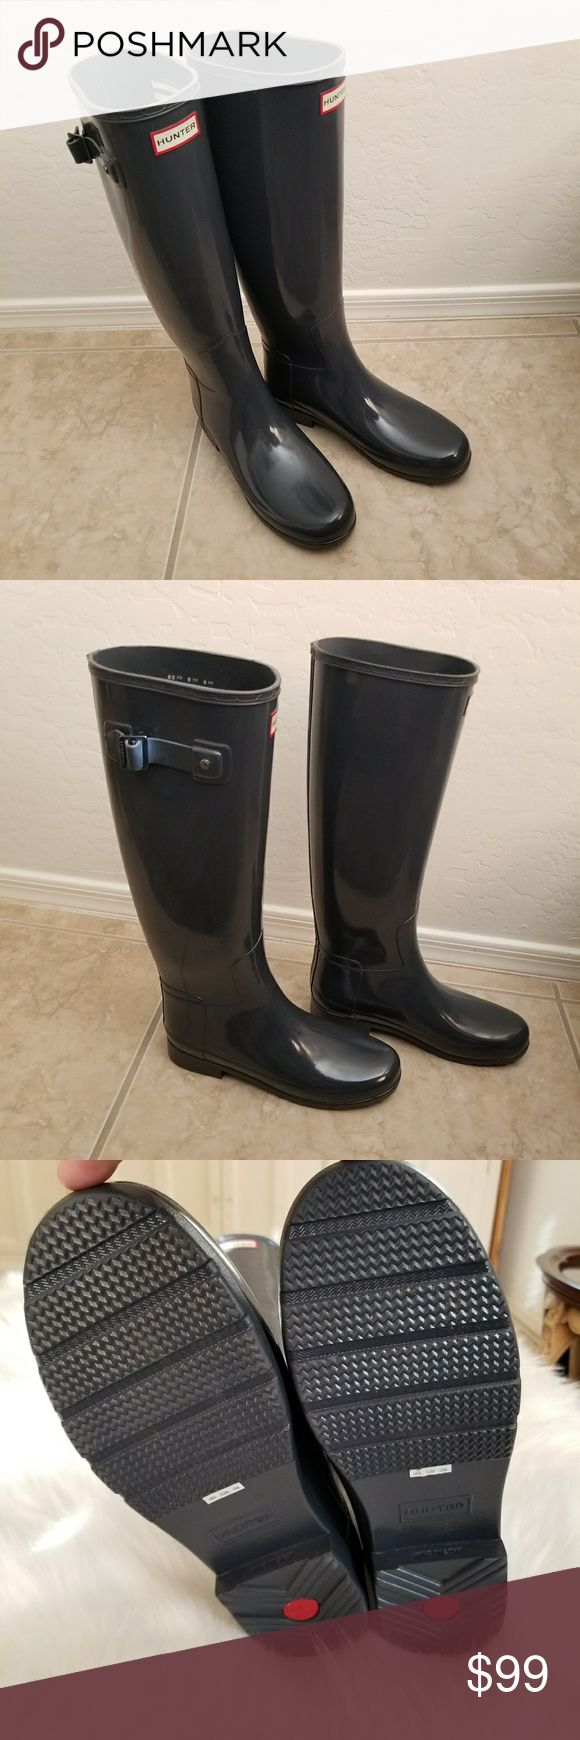 Hunter Tall Gloss Grey Boots Hunter Tall Gloss Grey Wellington Boots Size 8 $85 Excellent condition, like new Scottddale/Greenway Rd  X posted Hunter Boots Shoes Winter & Rain Boots